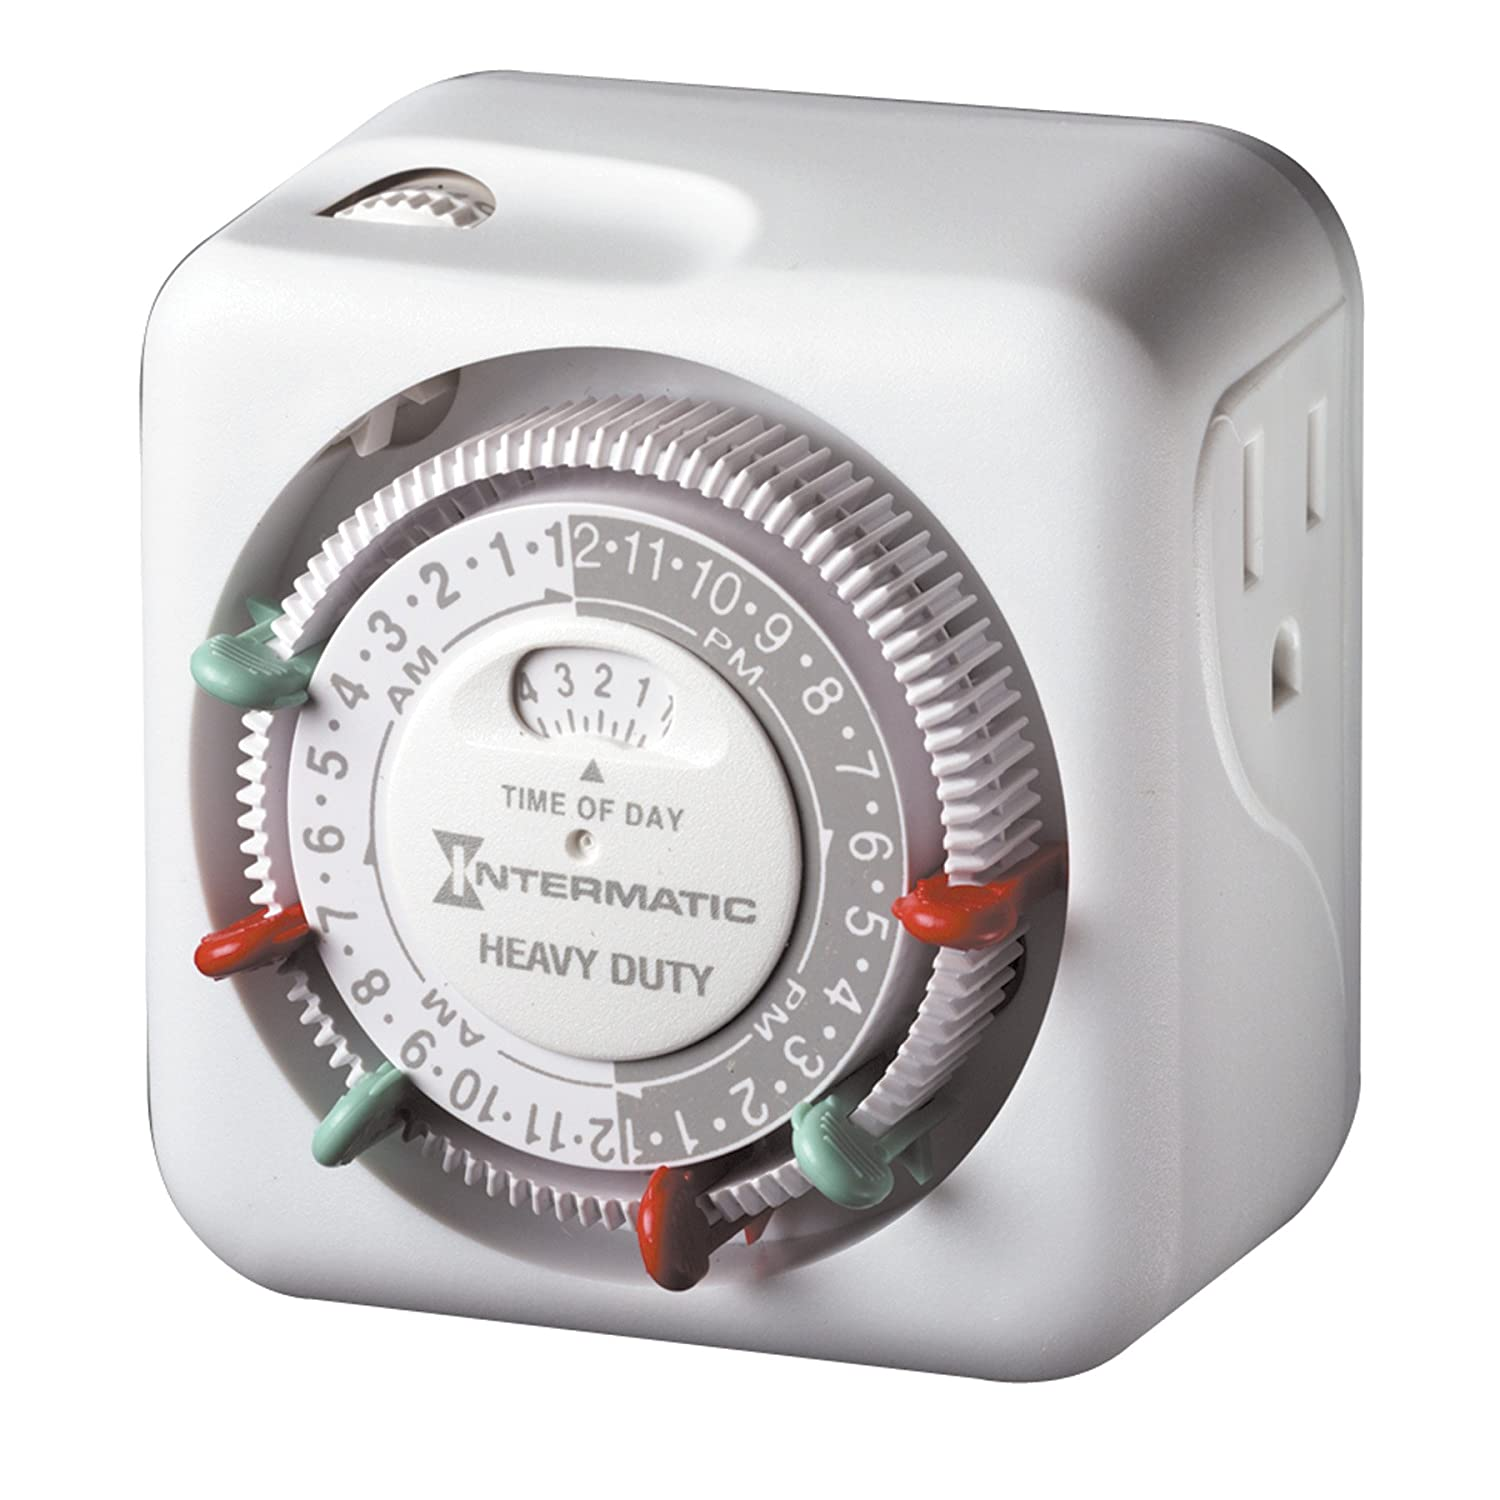 Setting Outdoor Light Timer: Intermatic TN311 15 Amp Heavy Duty Grounded Timer - Light Timer - Amazon.com,Lighting